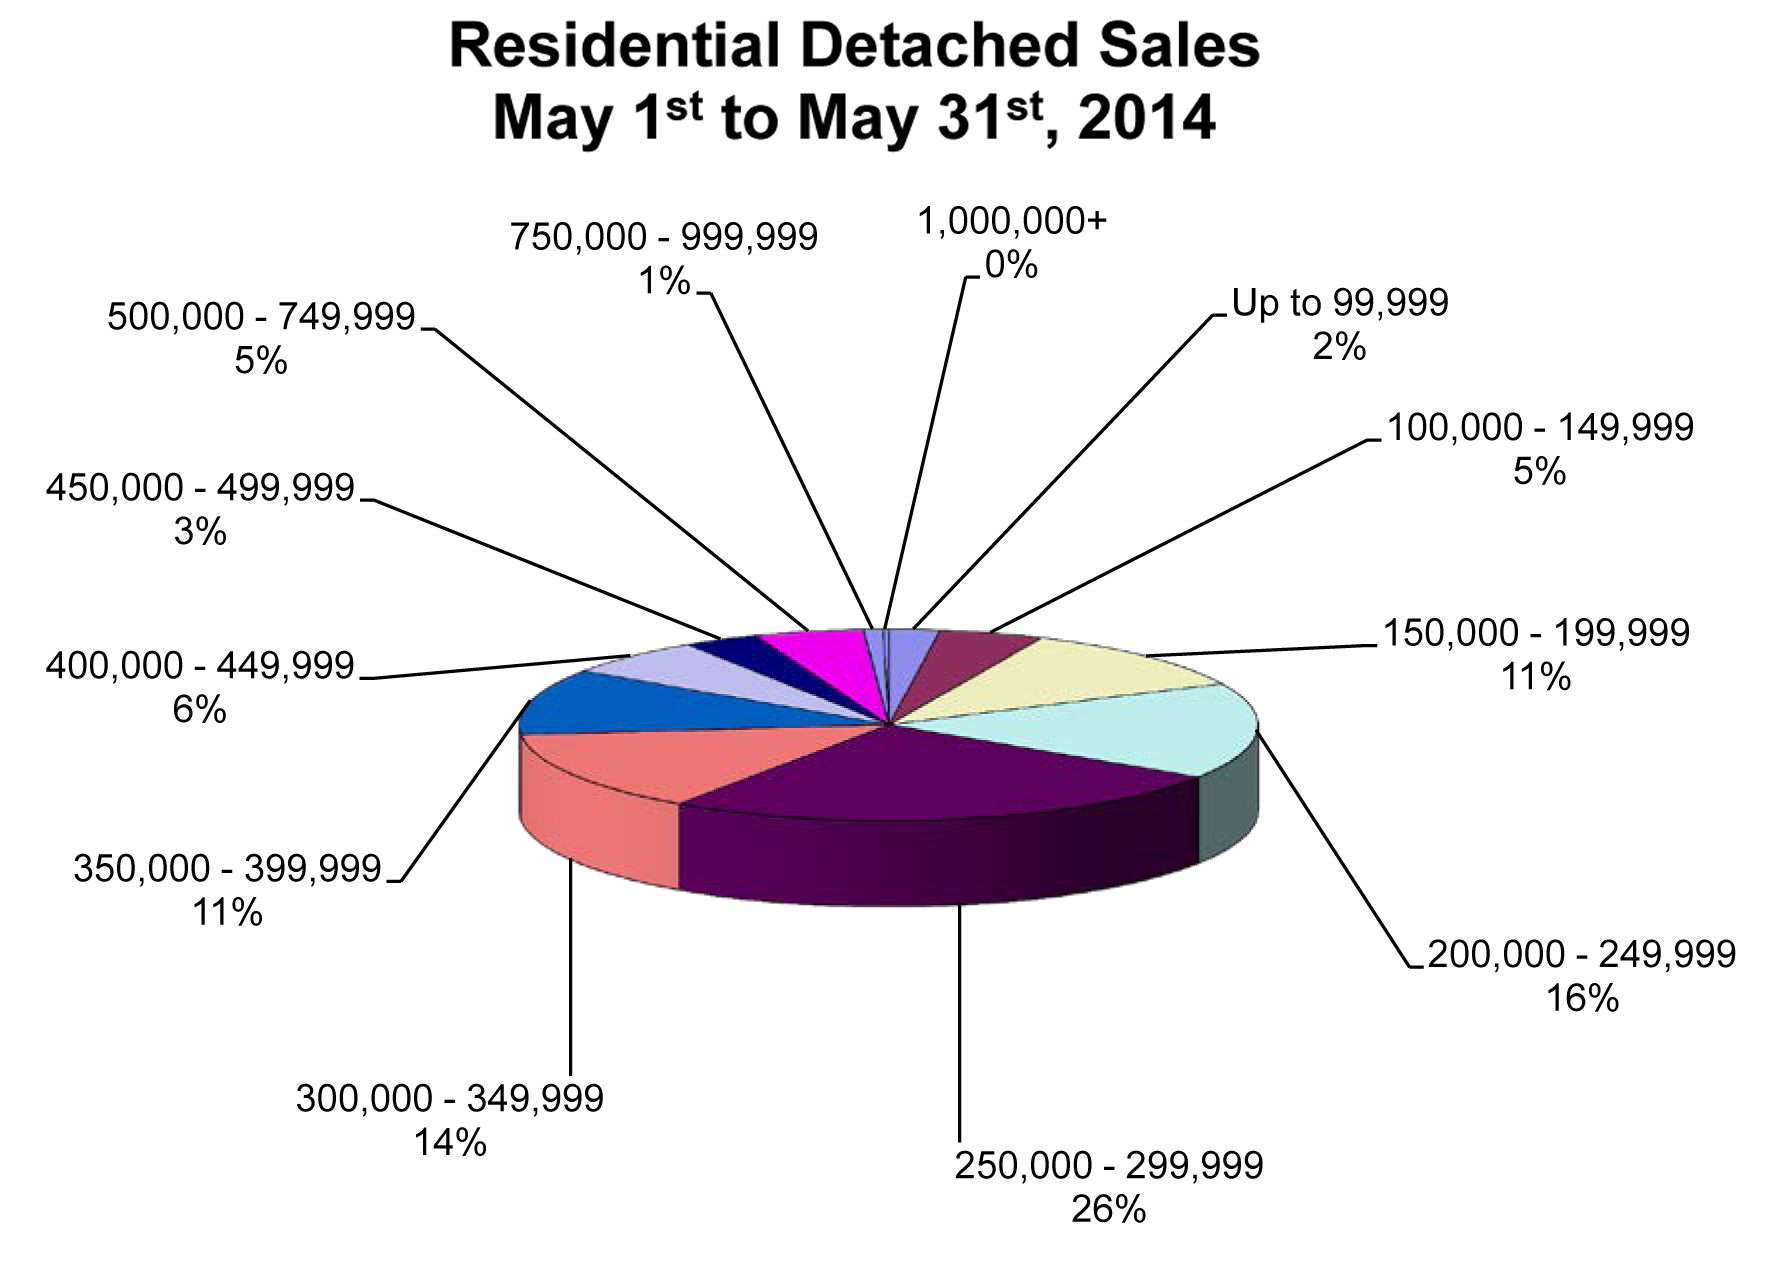 RD Sales Pie Chart May 2014